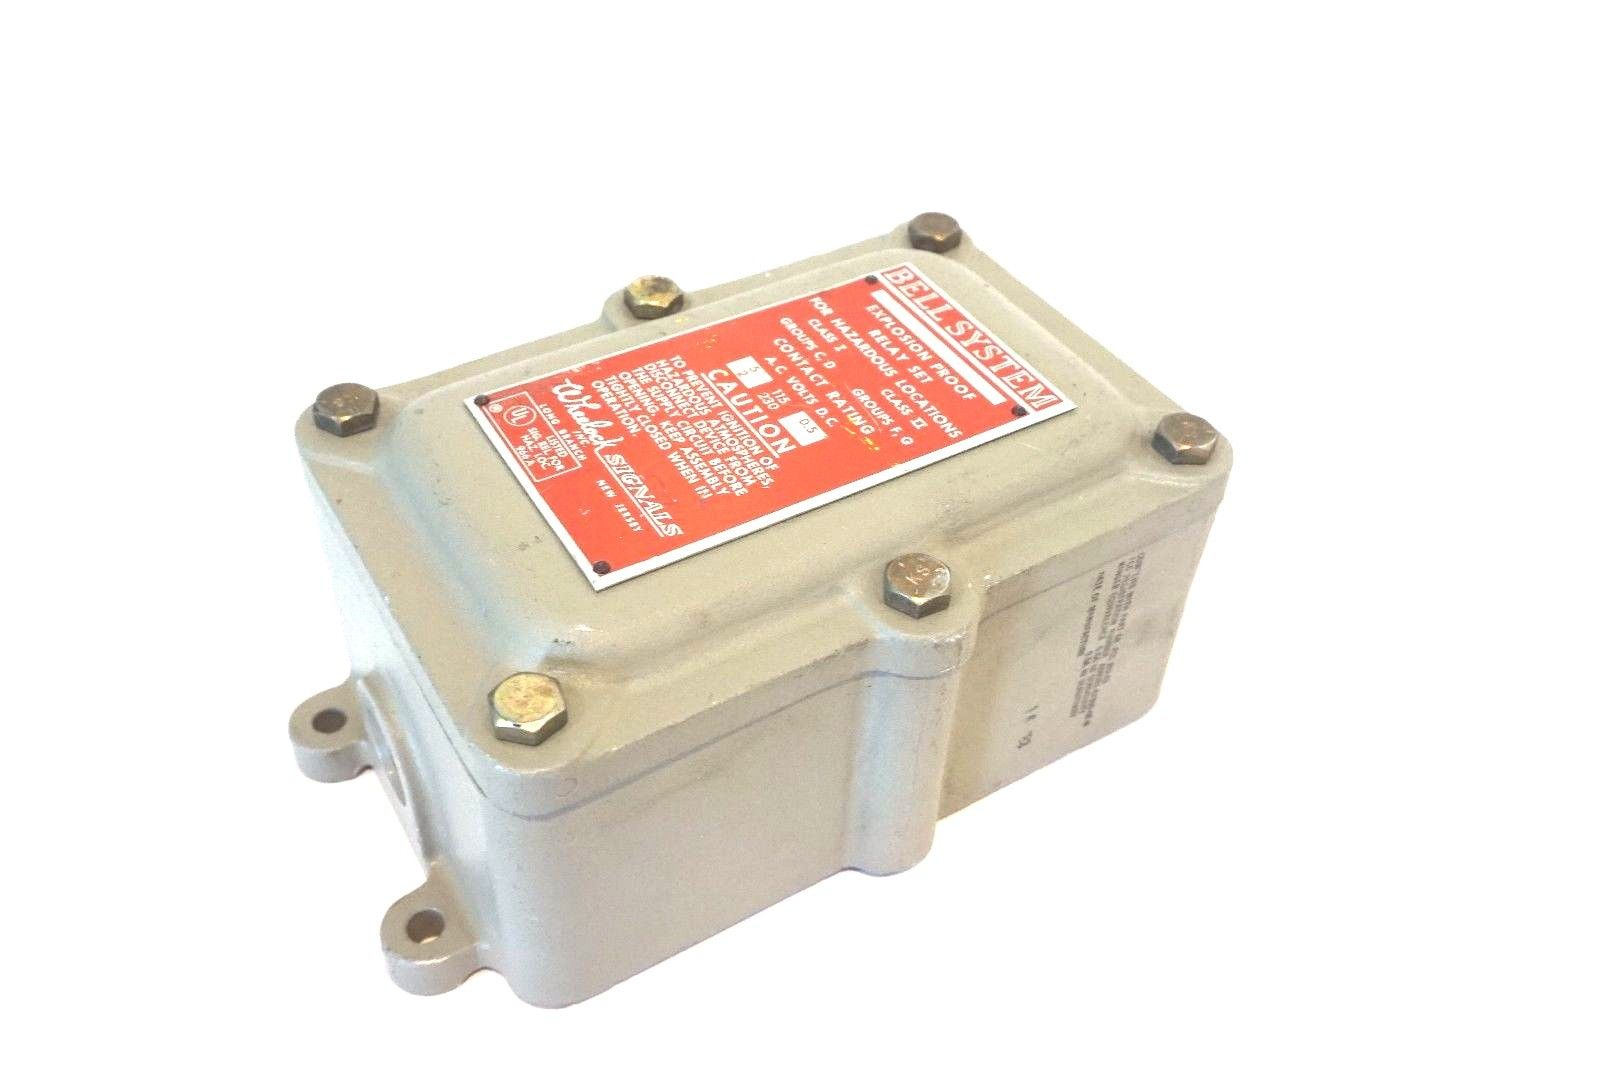 Explosion Proof Fuse Box : Sb industrial supply mro plc equipment parts